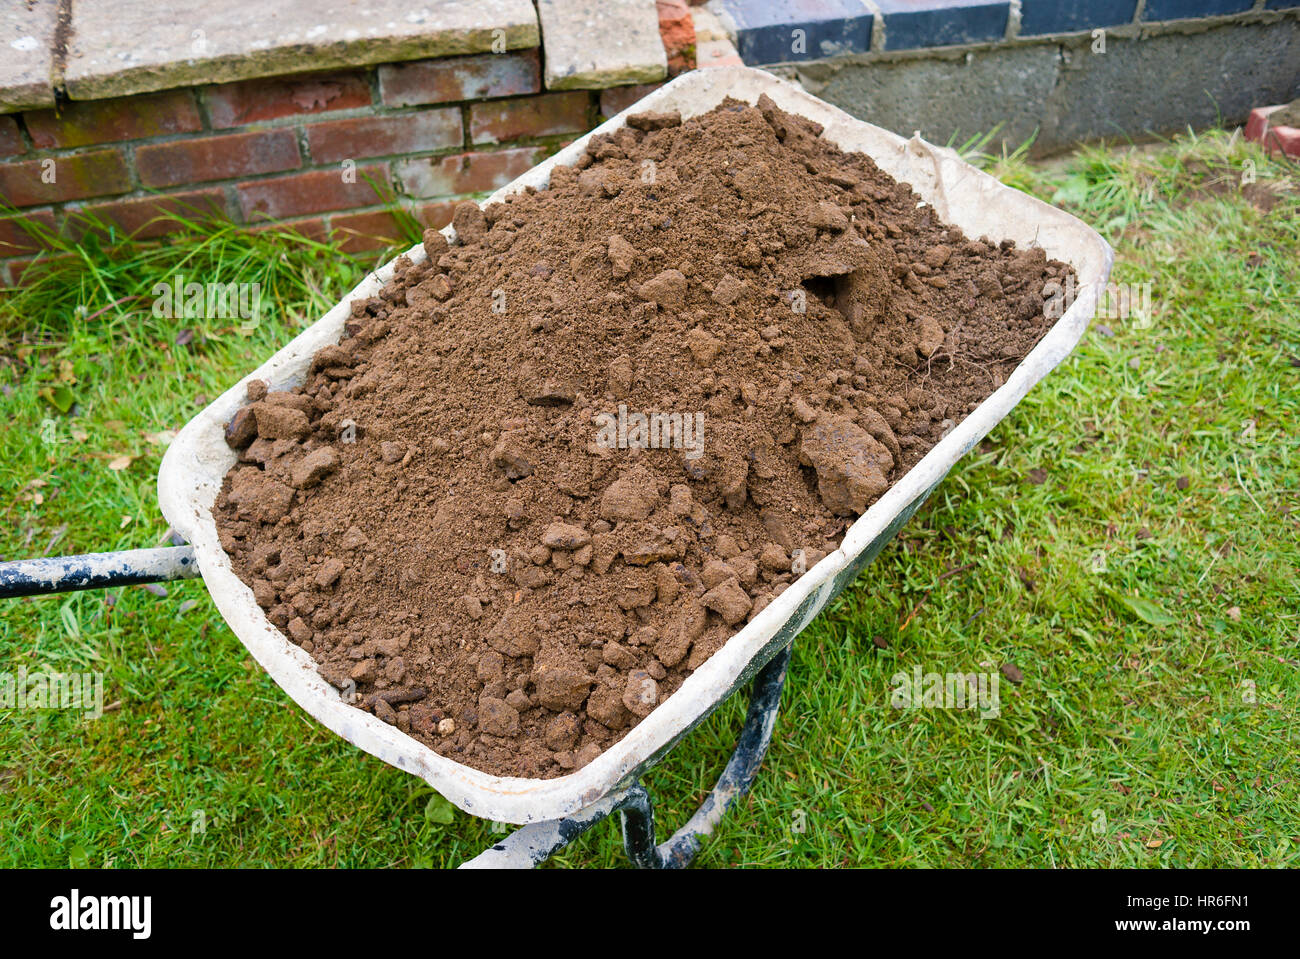 Wheelbarrow filled with spoil dug out of a new outdoor pond - Stock Image